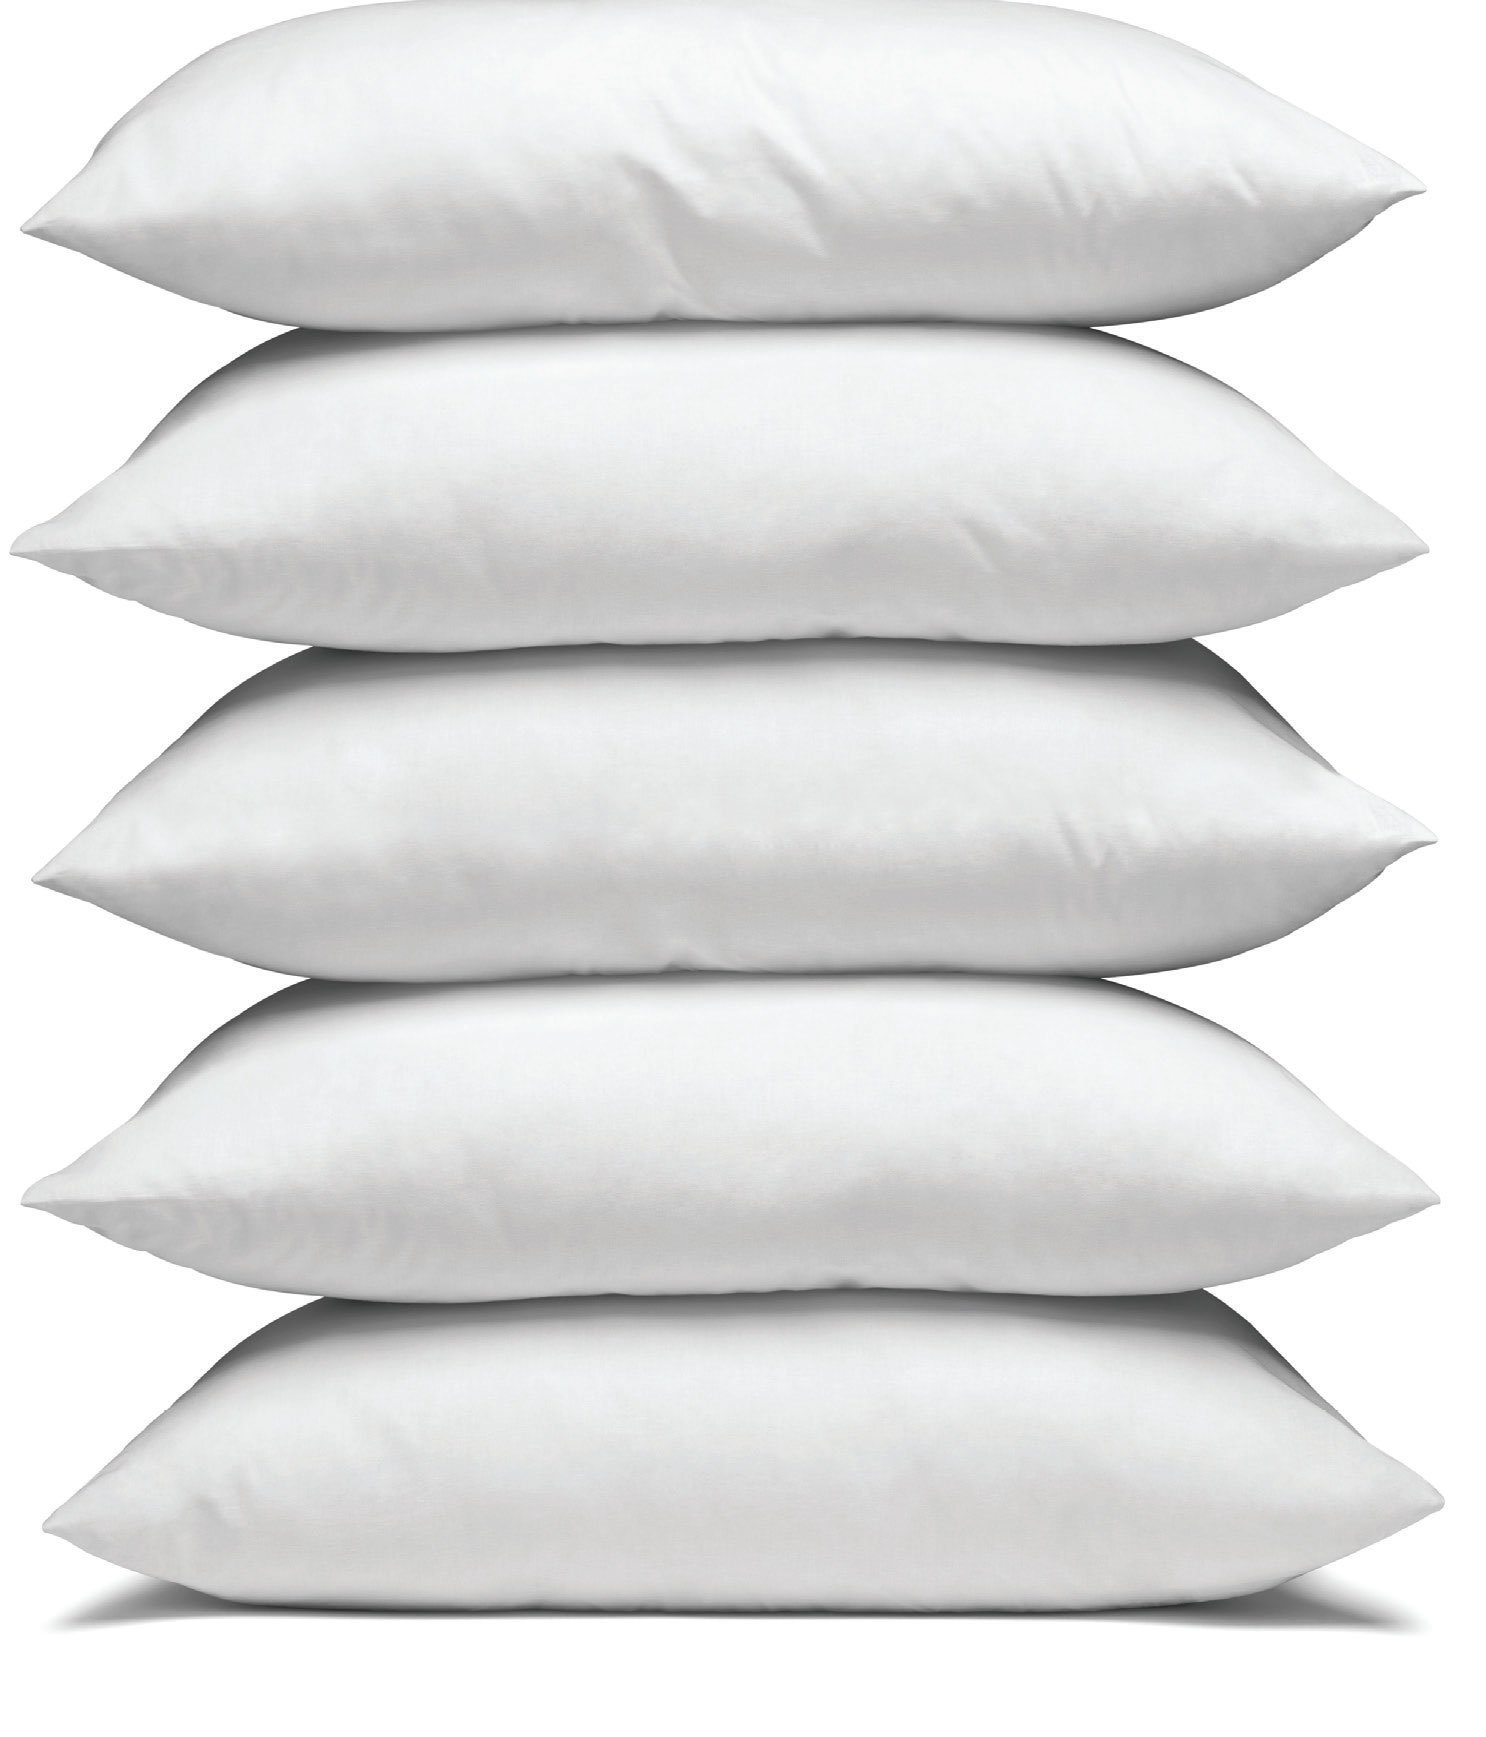 Comfortable pillows stacked high.